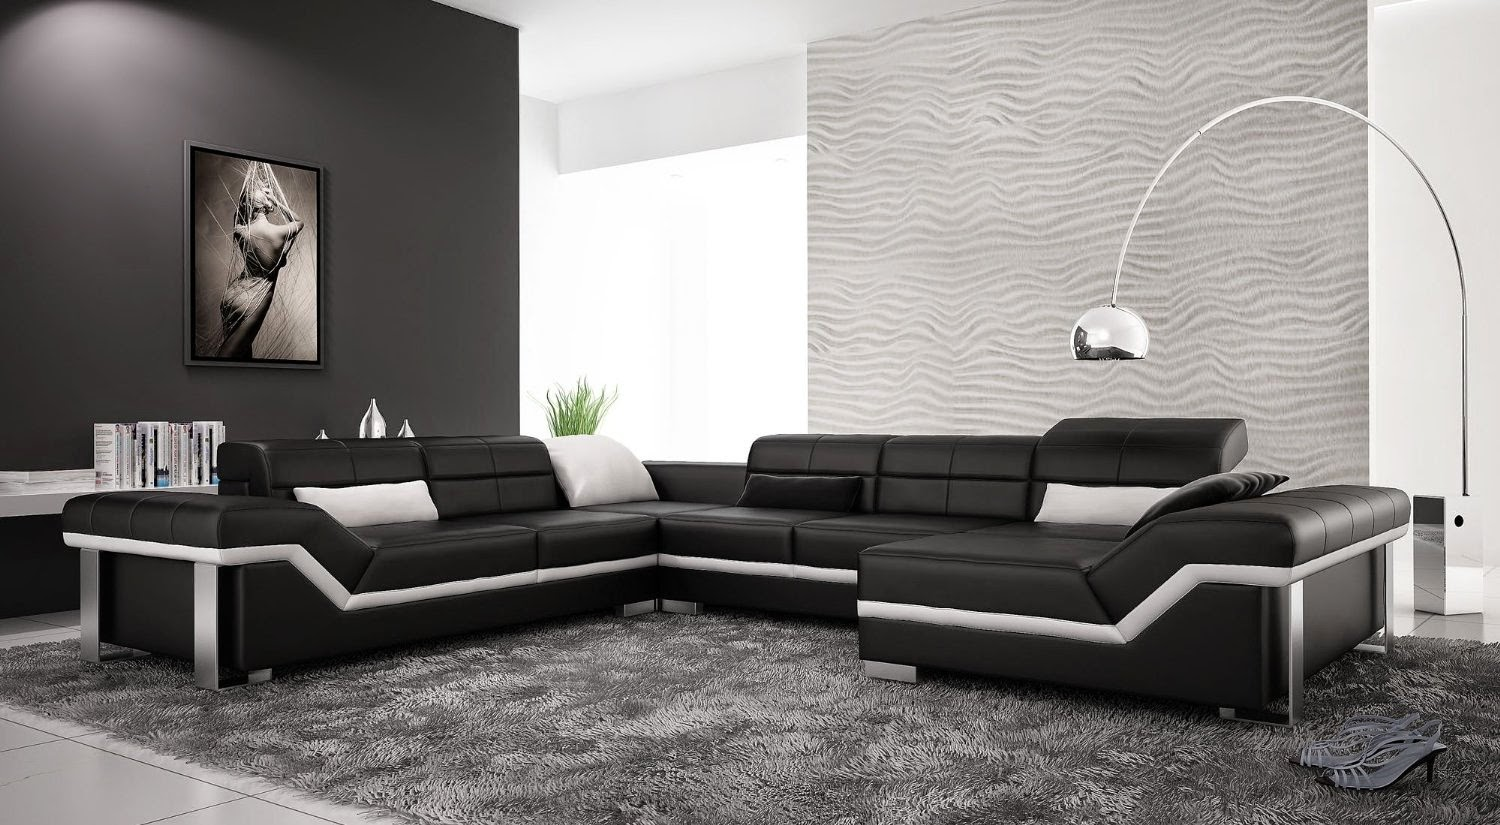 Best of Black and White Modern Living Rooms (4) black and white modern living rooms Best of: Black and White Modern Living Rooms Best of Black and White Modern Living Rooms 4